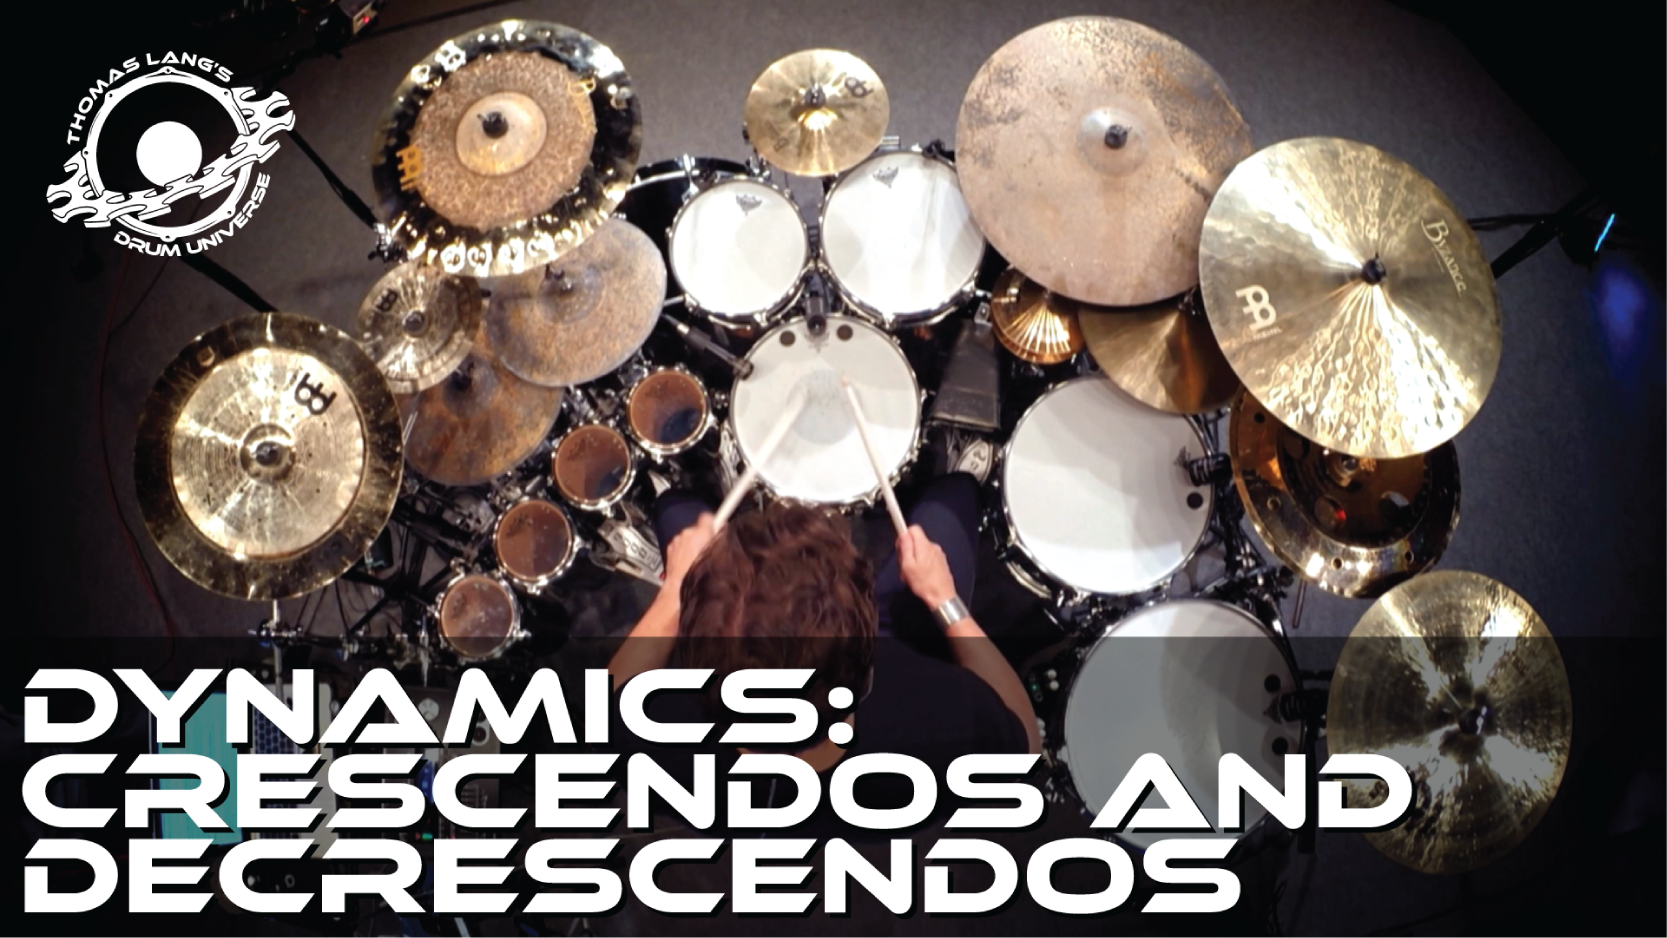 Dynamics: Crescendos and Decrescendos